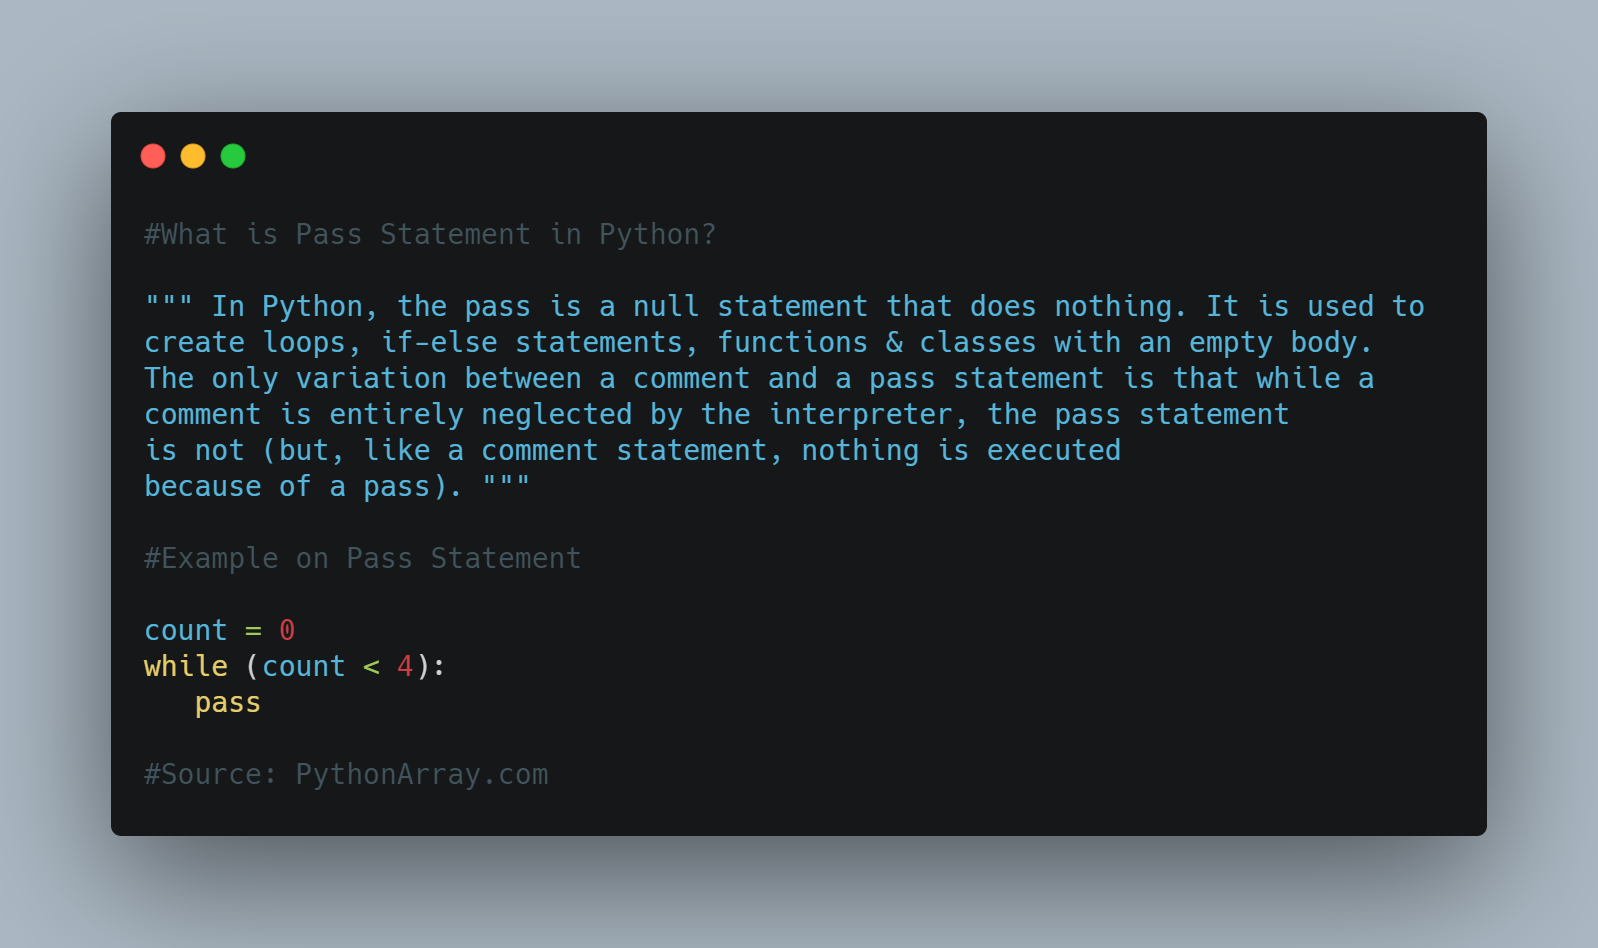 What is Pass Statement in Python